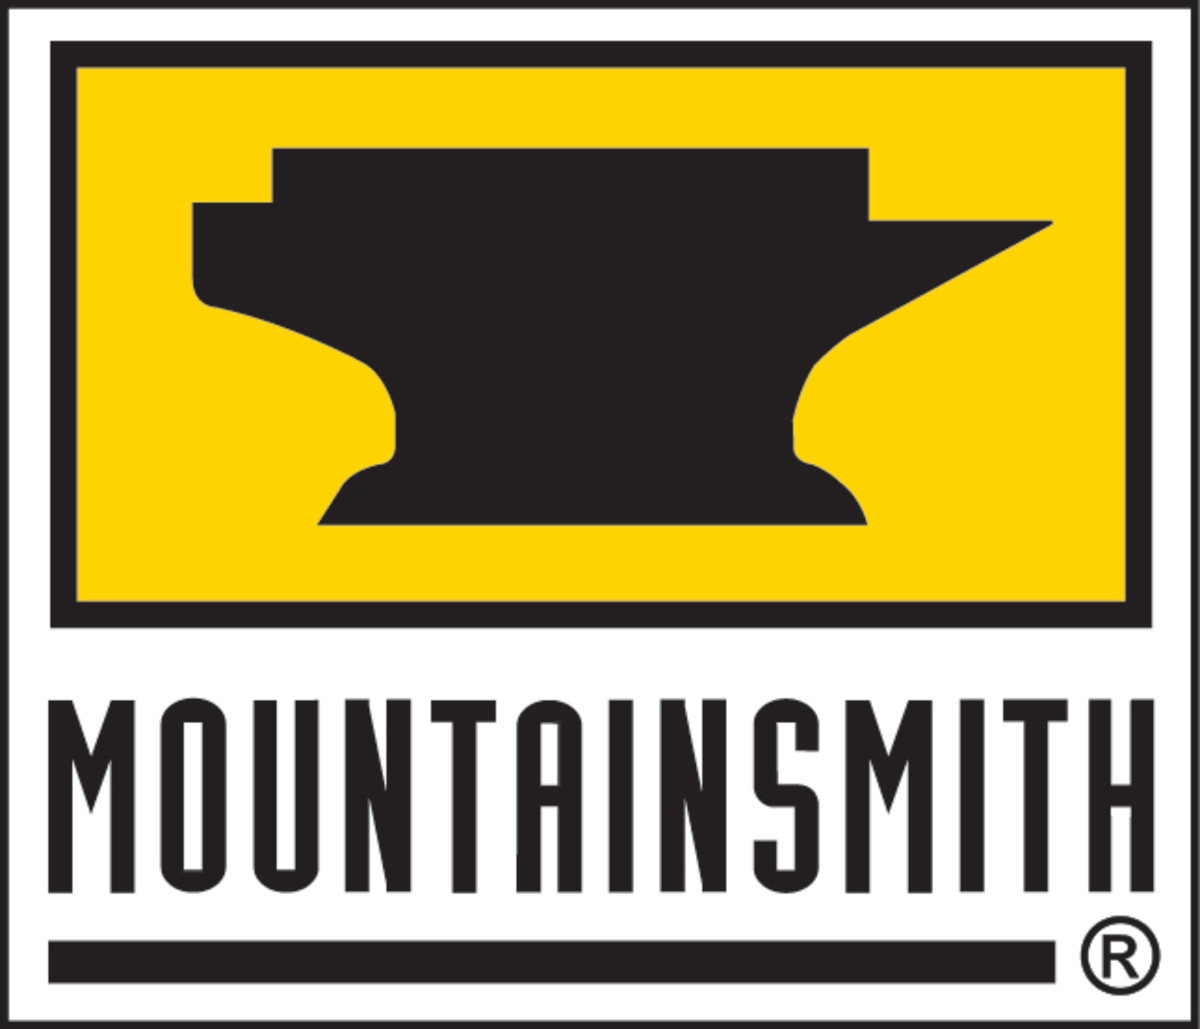 F - MountainSmith